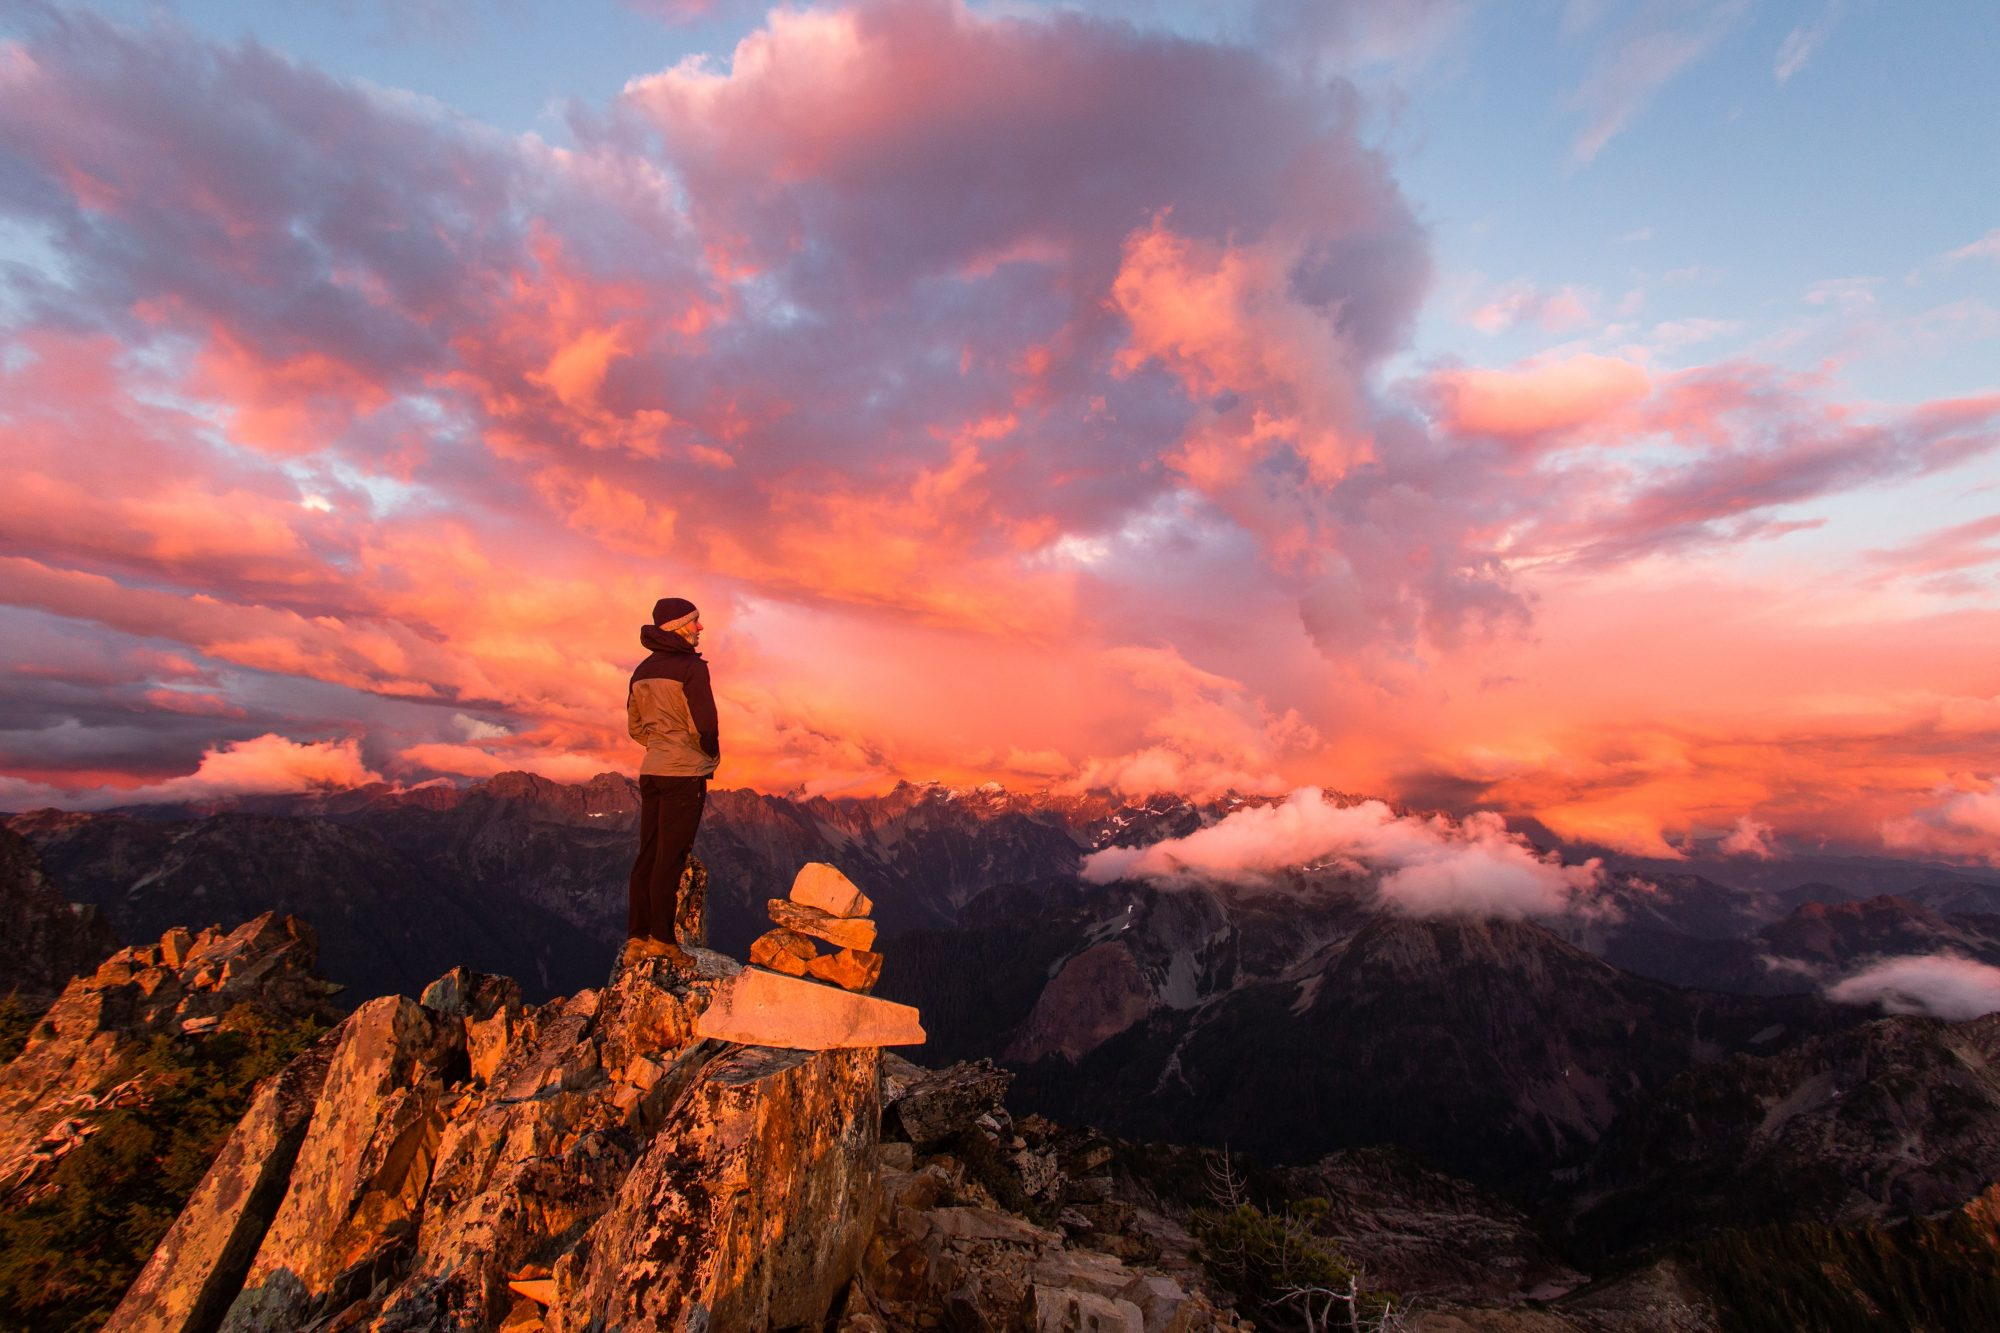 Person stands on top of a ridge overlooking the mountains at sunrise. The clouds and sky are bright pink with hues of yellow and gold.